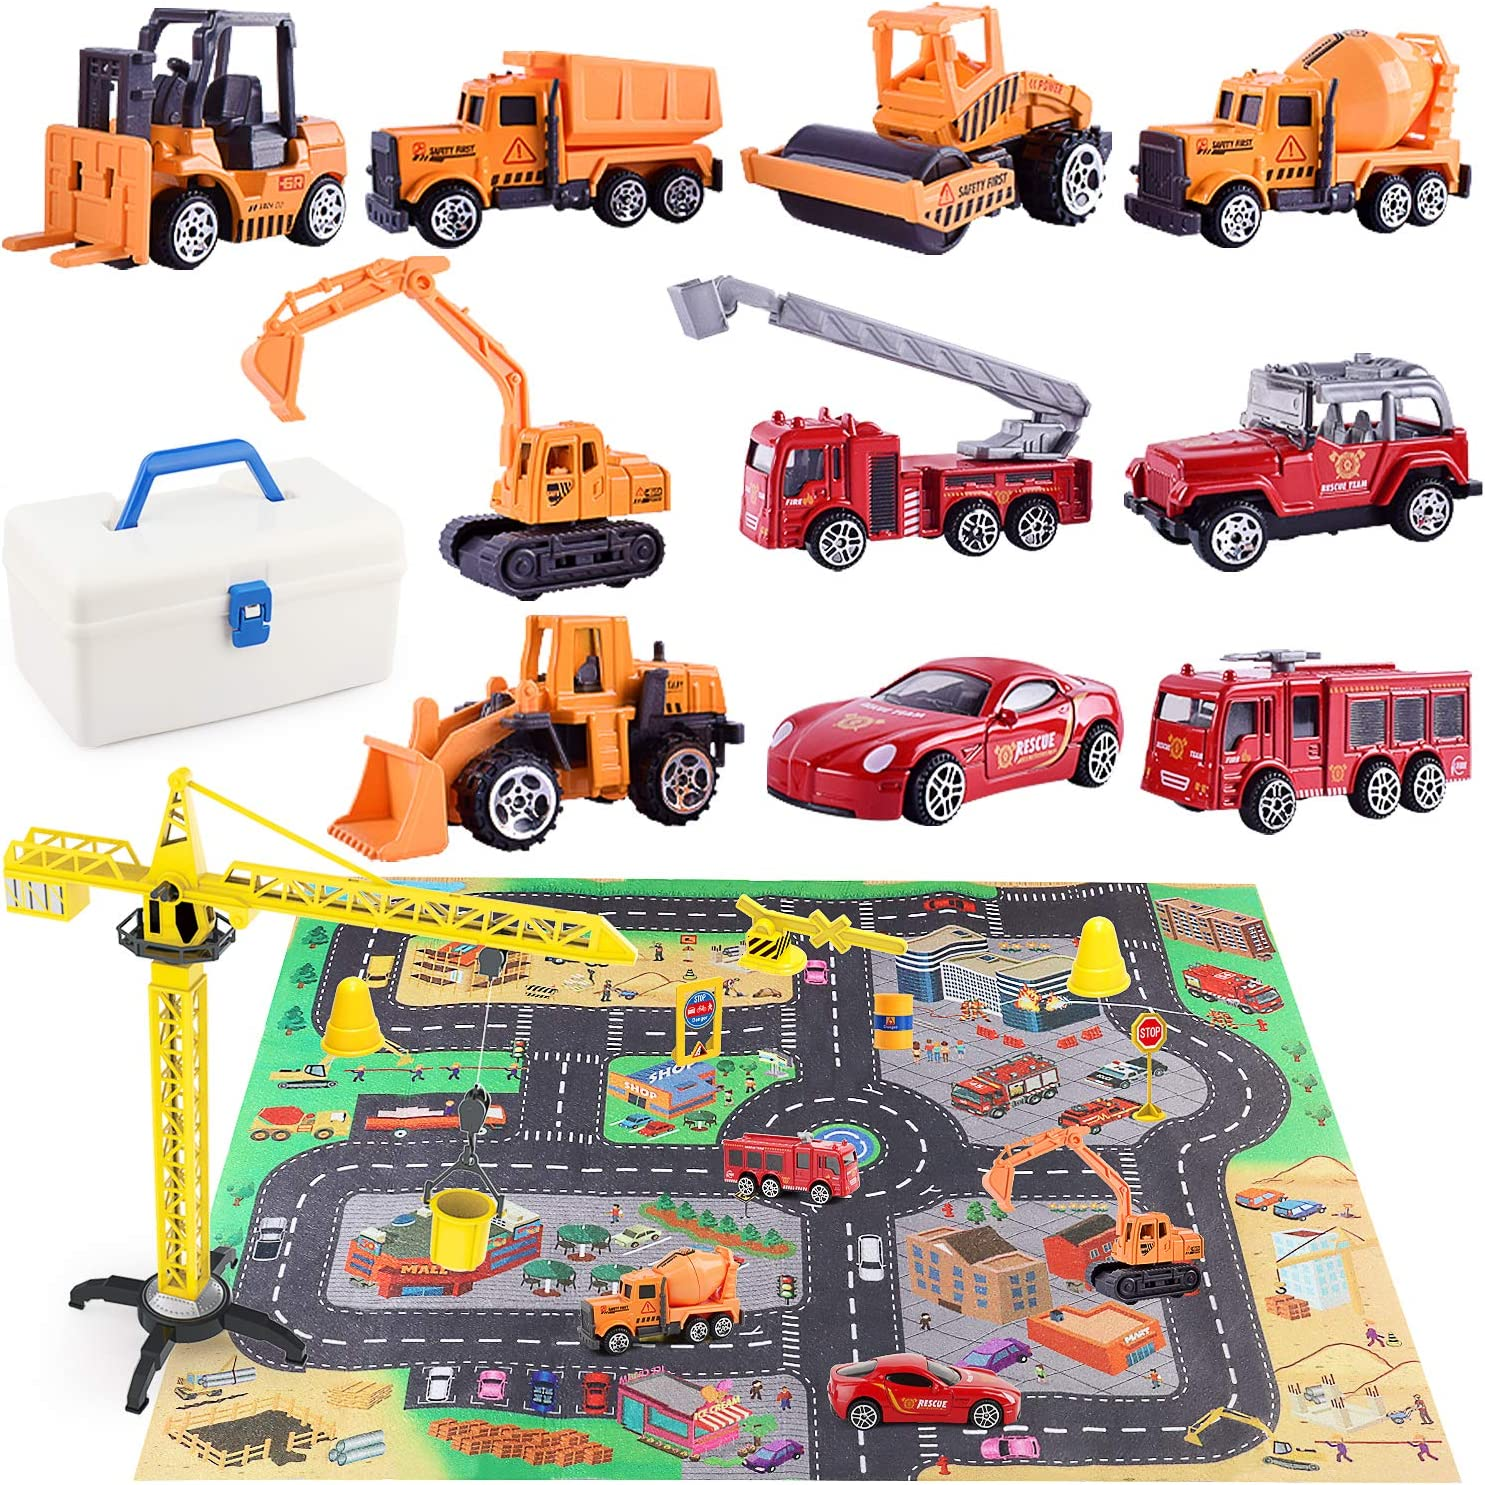 HONYAT Engineering Construction Vehicles Toys Set with Play Mat and Car Storage Box ,10 Alloy Cars Include Fire Trucks -with Accessories and Tower Crane ,Gift for Boys and Girls Ages 3-12.: Toys & Games